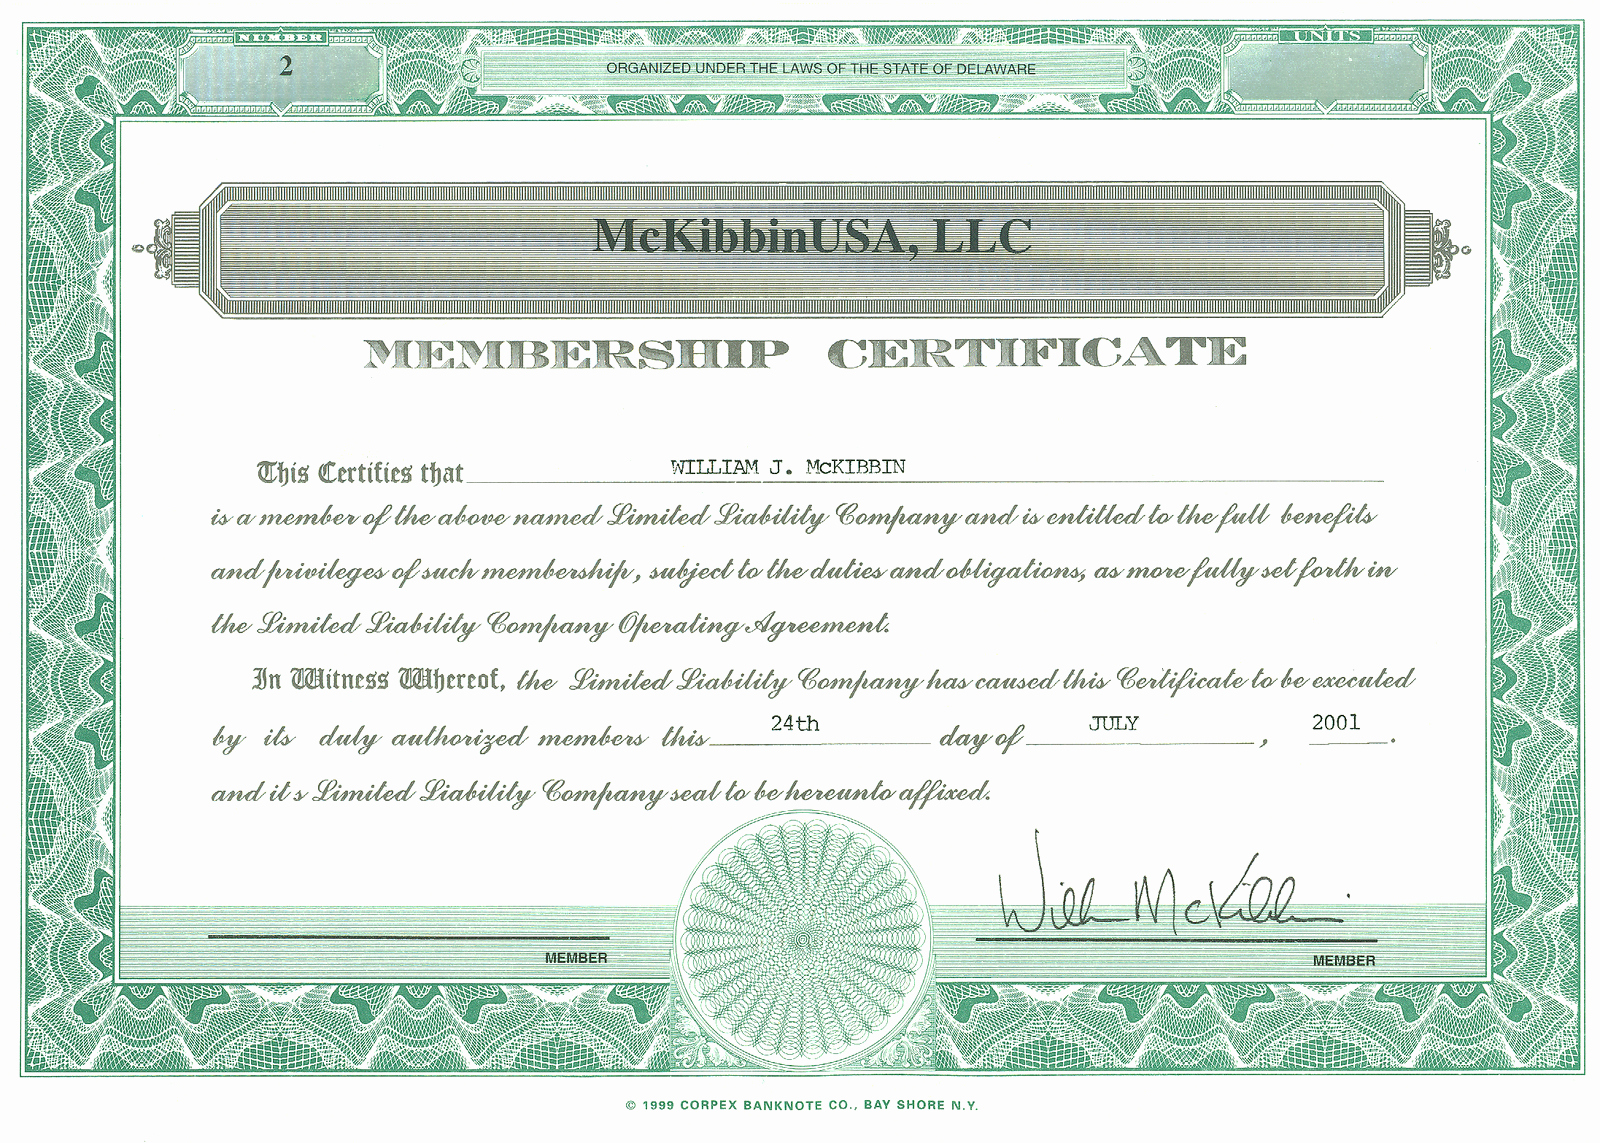 Llc Membership Certificates Templates Best Of the Vantage Point the Best Investment Ever